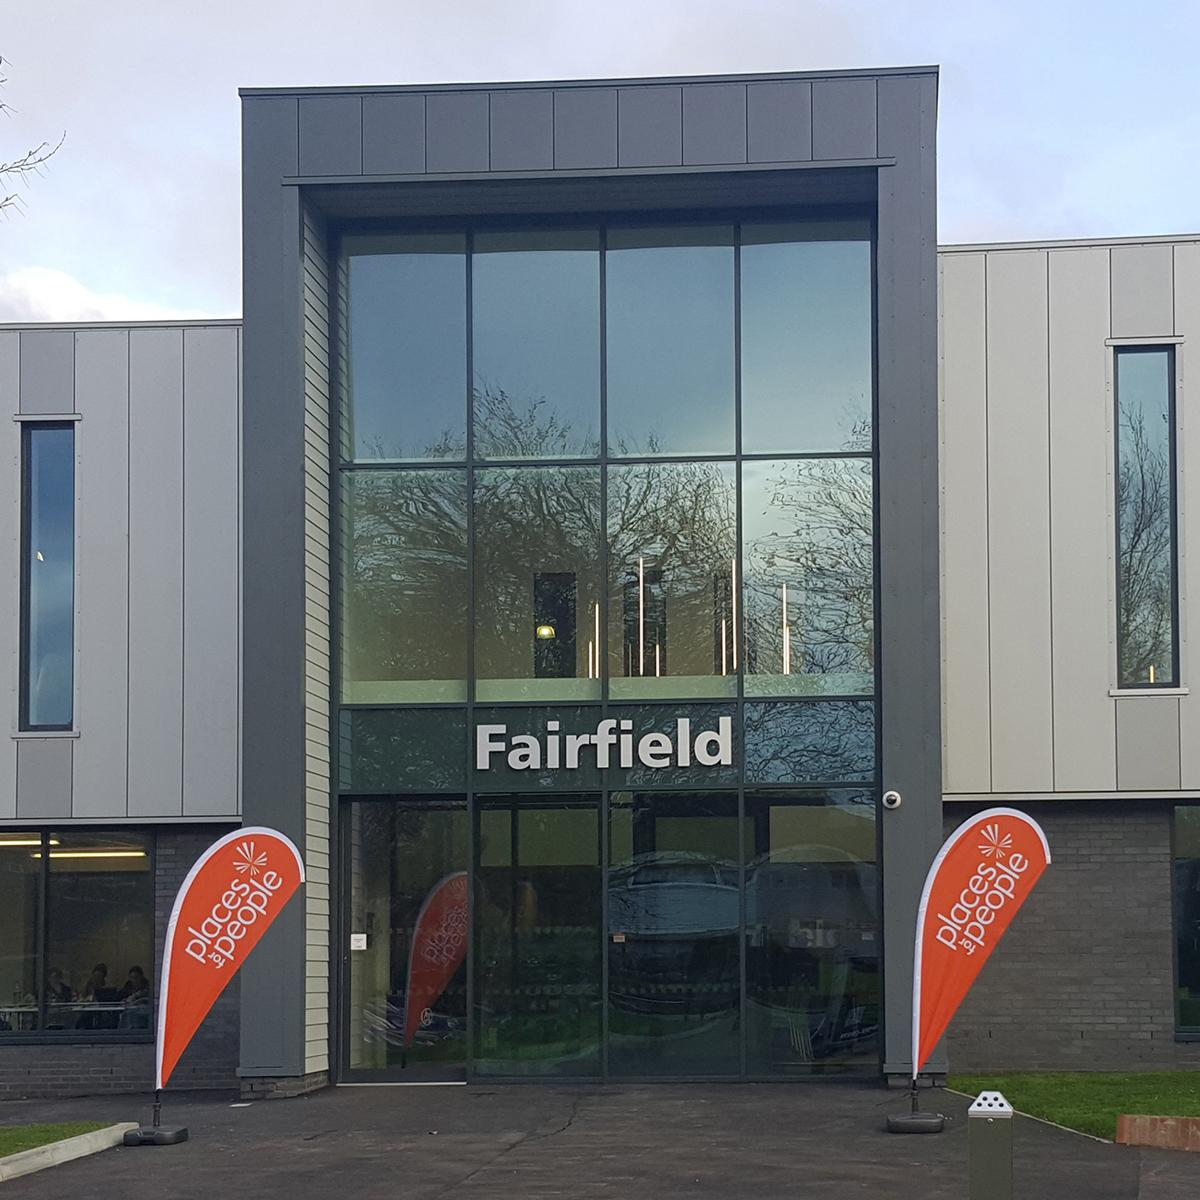 Fairfield Leisure Centre, which is run by Places for People, took two years to build